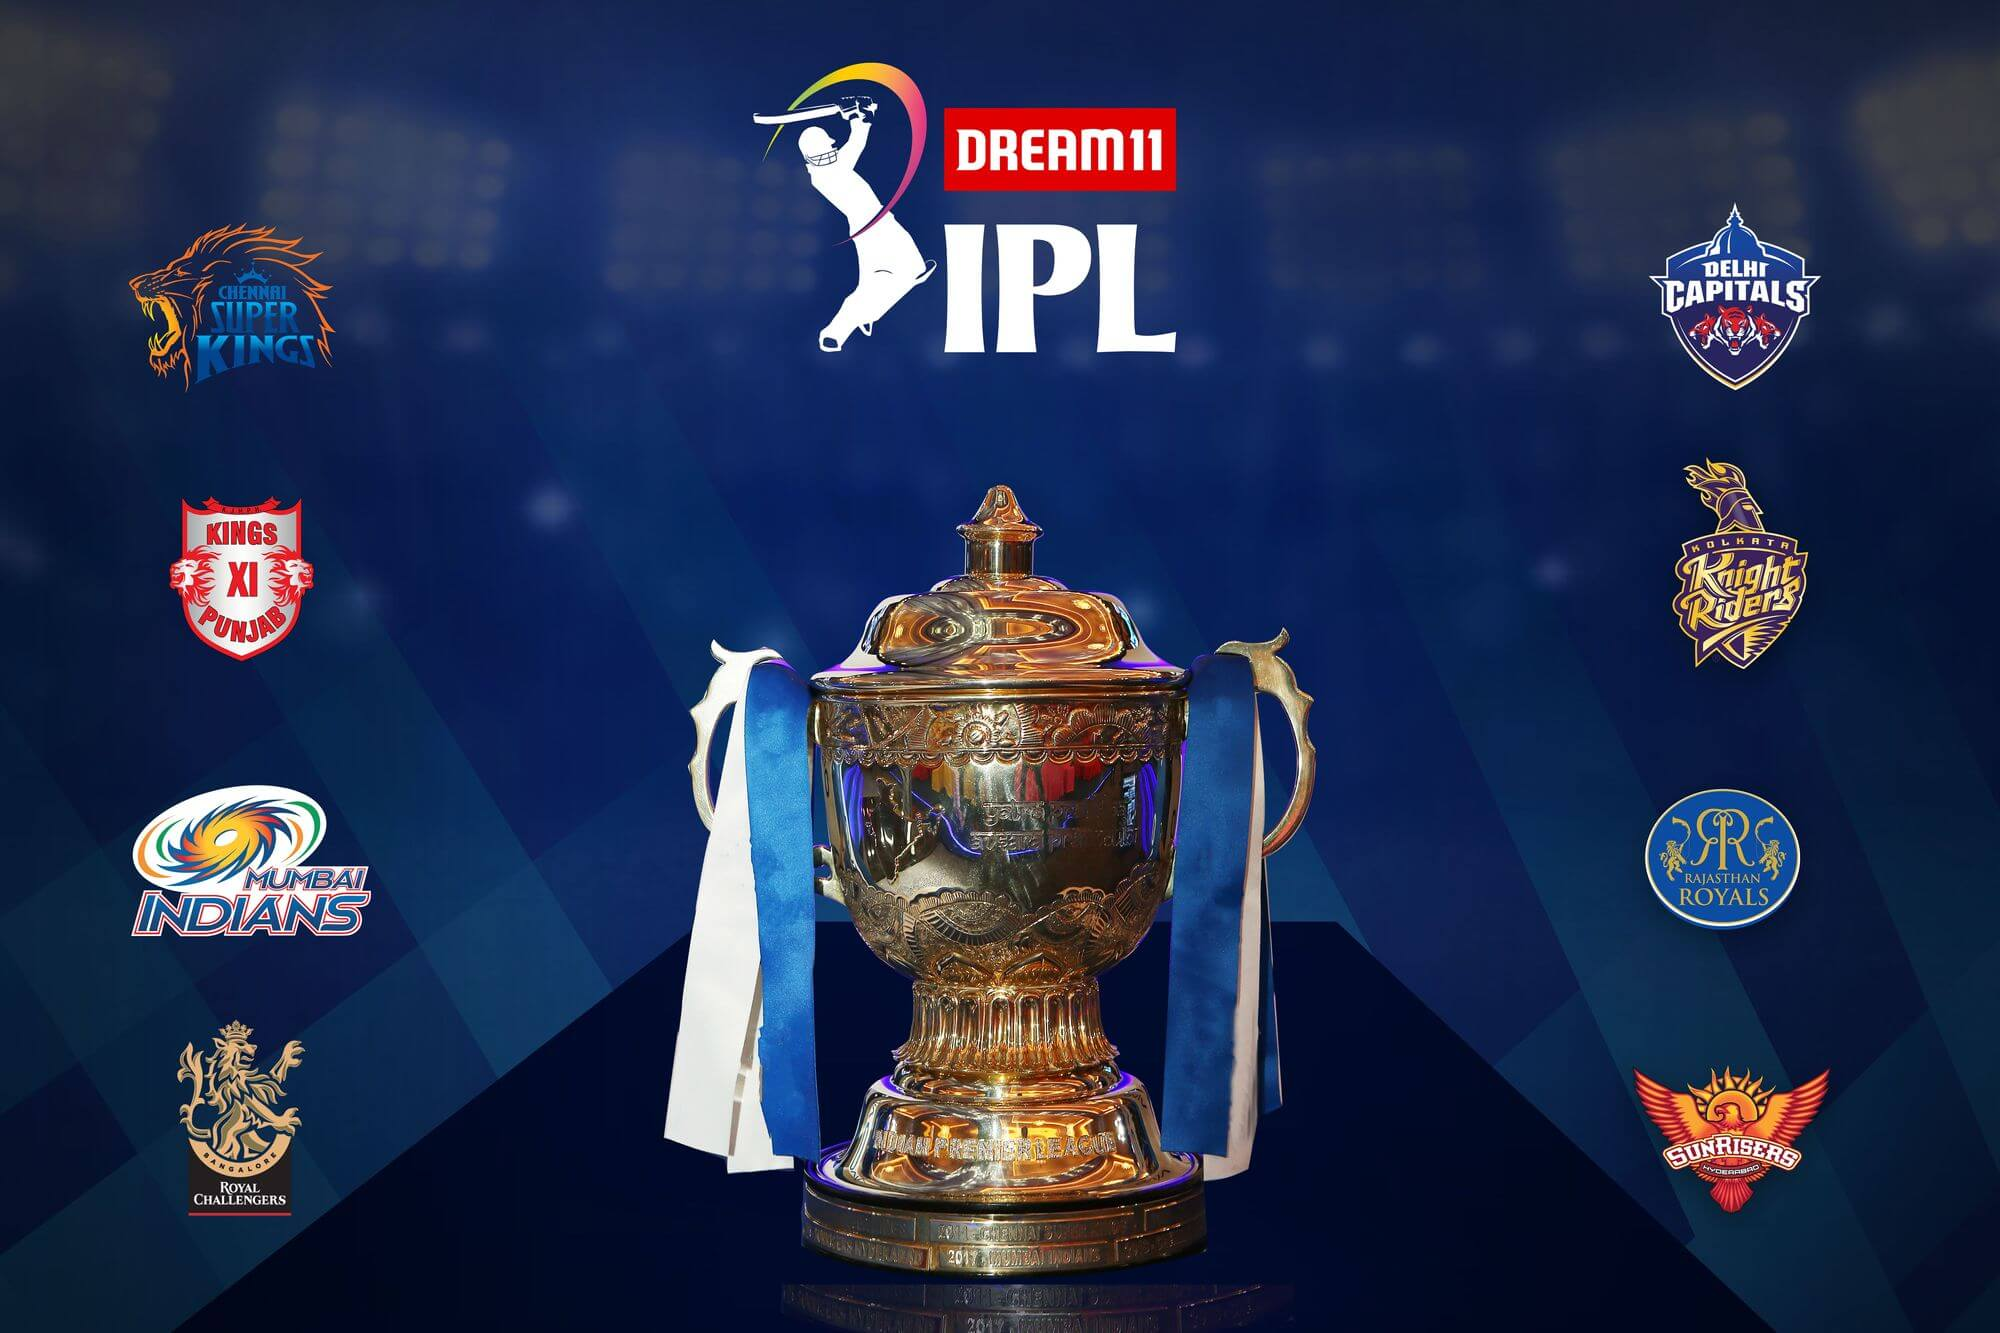 fullscheduleofipl2020tobereleasedtomorrowconfirmschairmanbrijeshpatel